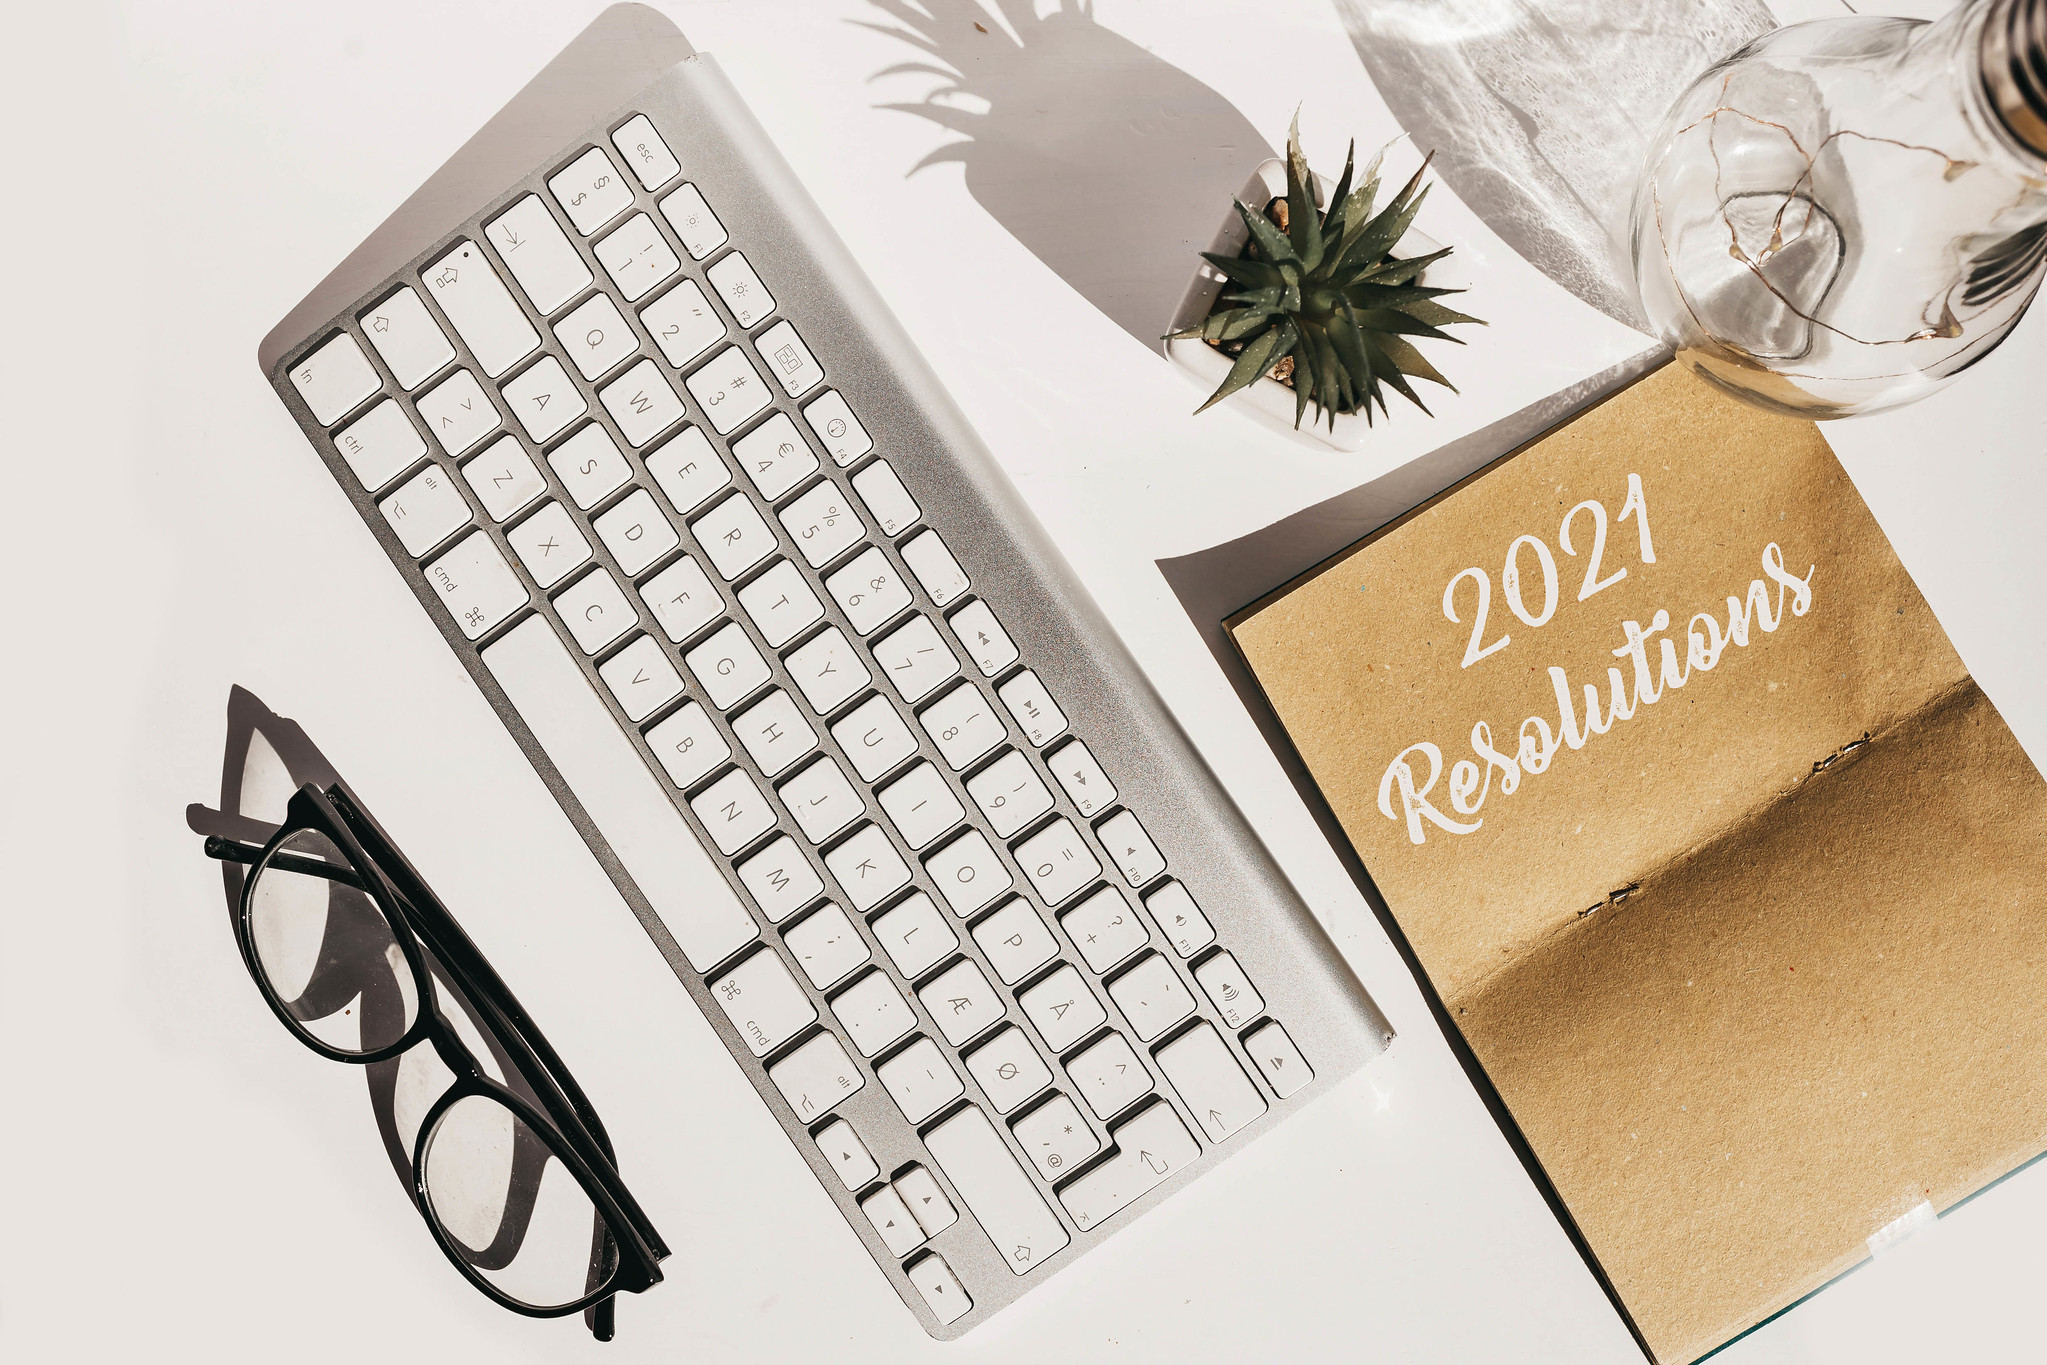 top 10 new year s resolutions for 2021 you must follow top 10 new year s resolutions for 2021